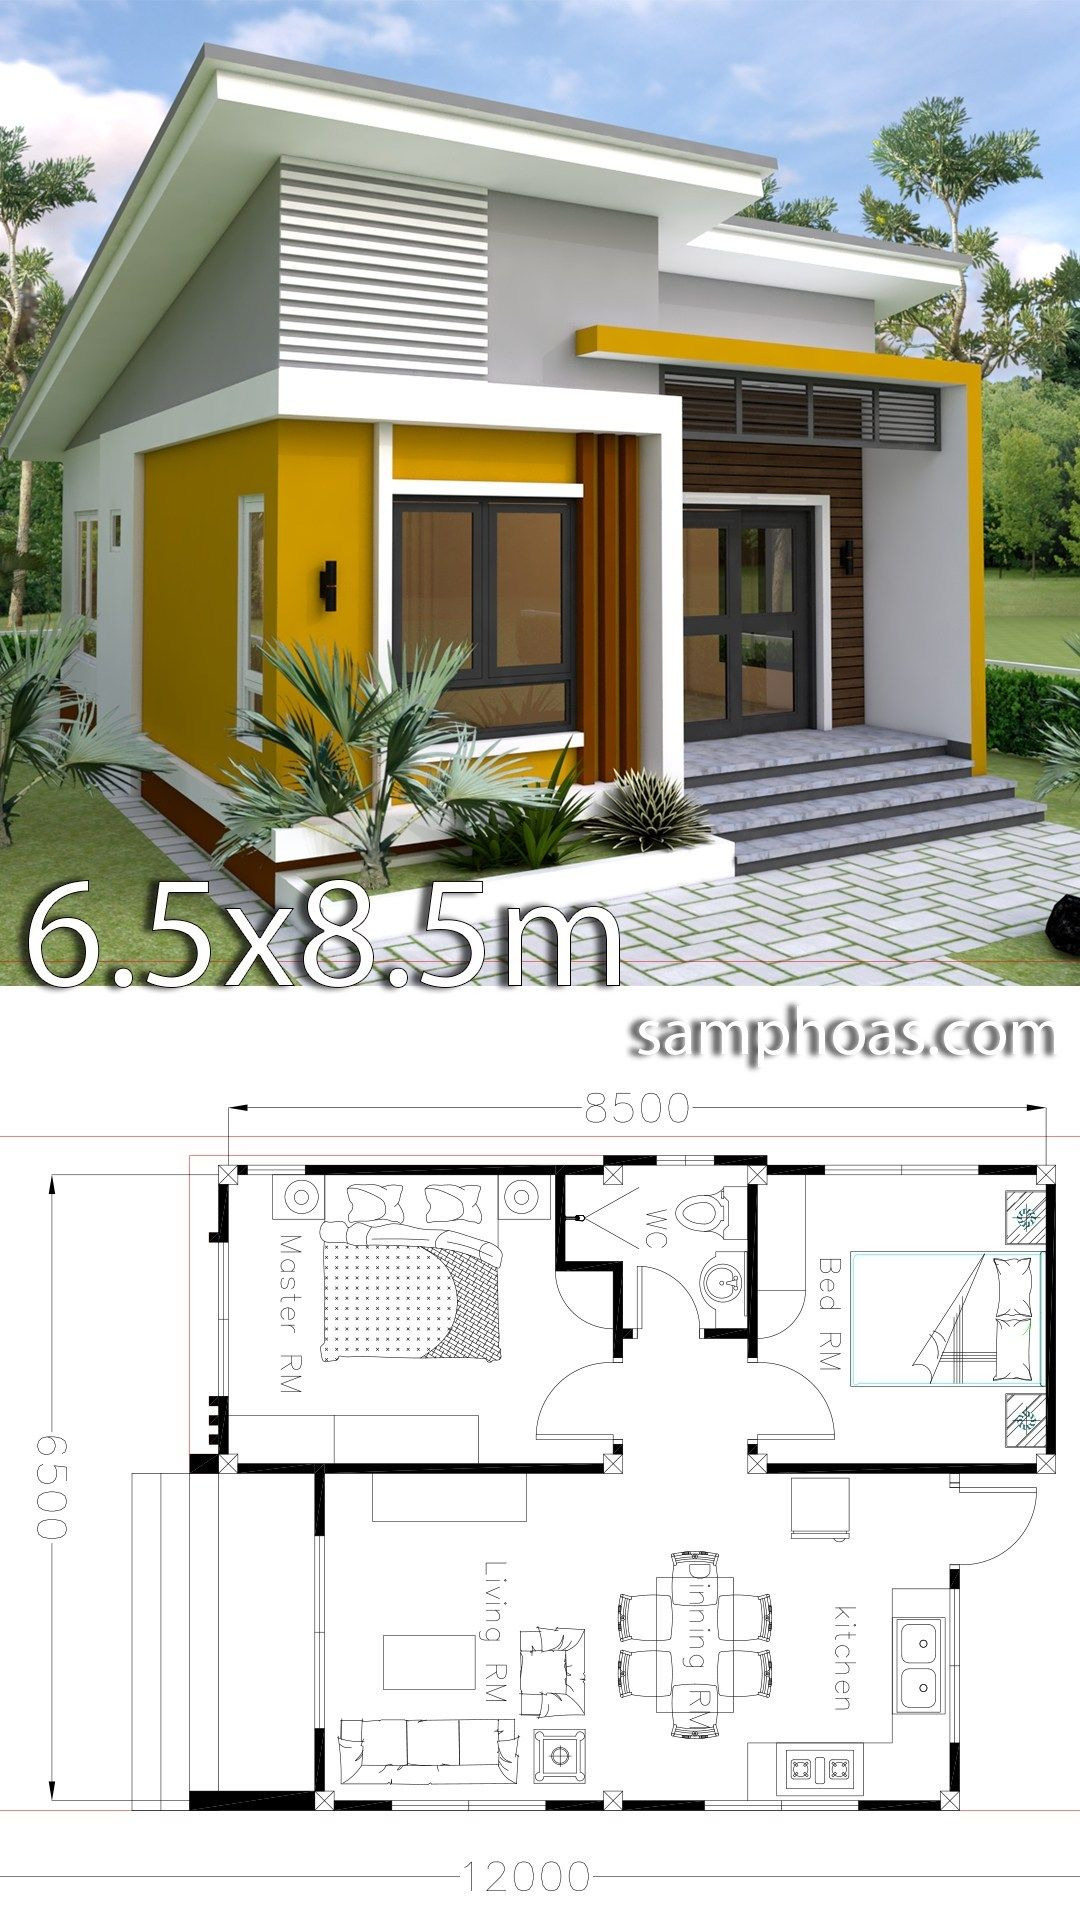 Simple Small House Design Unique Small Home Design Plan 6 5x8 5m with 2 Bedrooms with Images